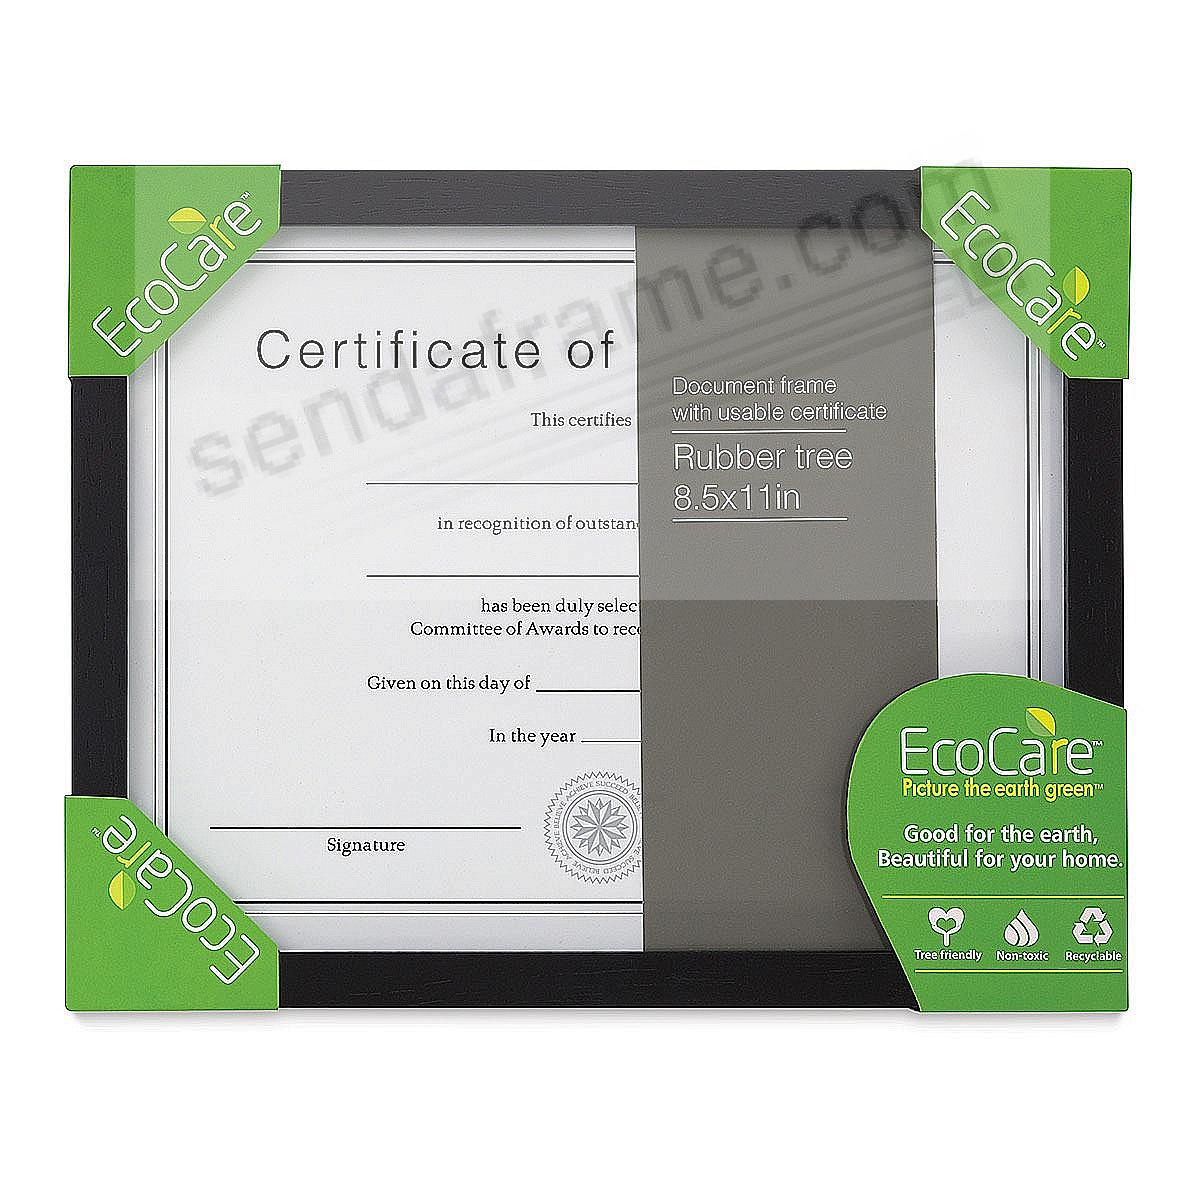 CONTEMPORARY Rubberwood Black 11x8½ frame by EcoCare®